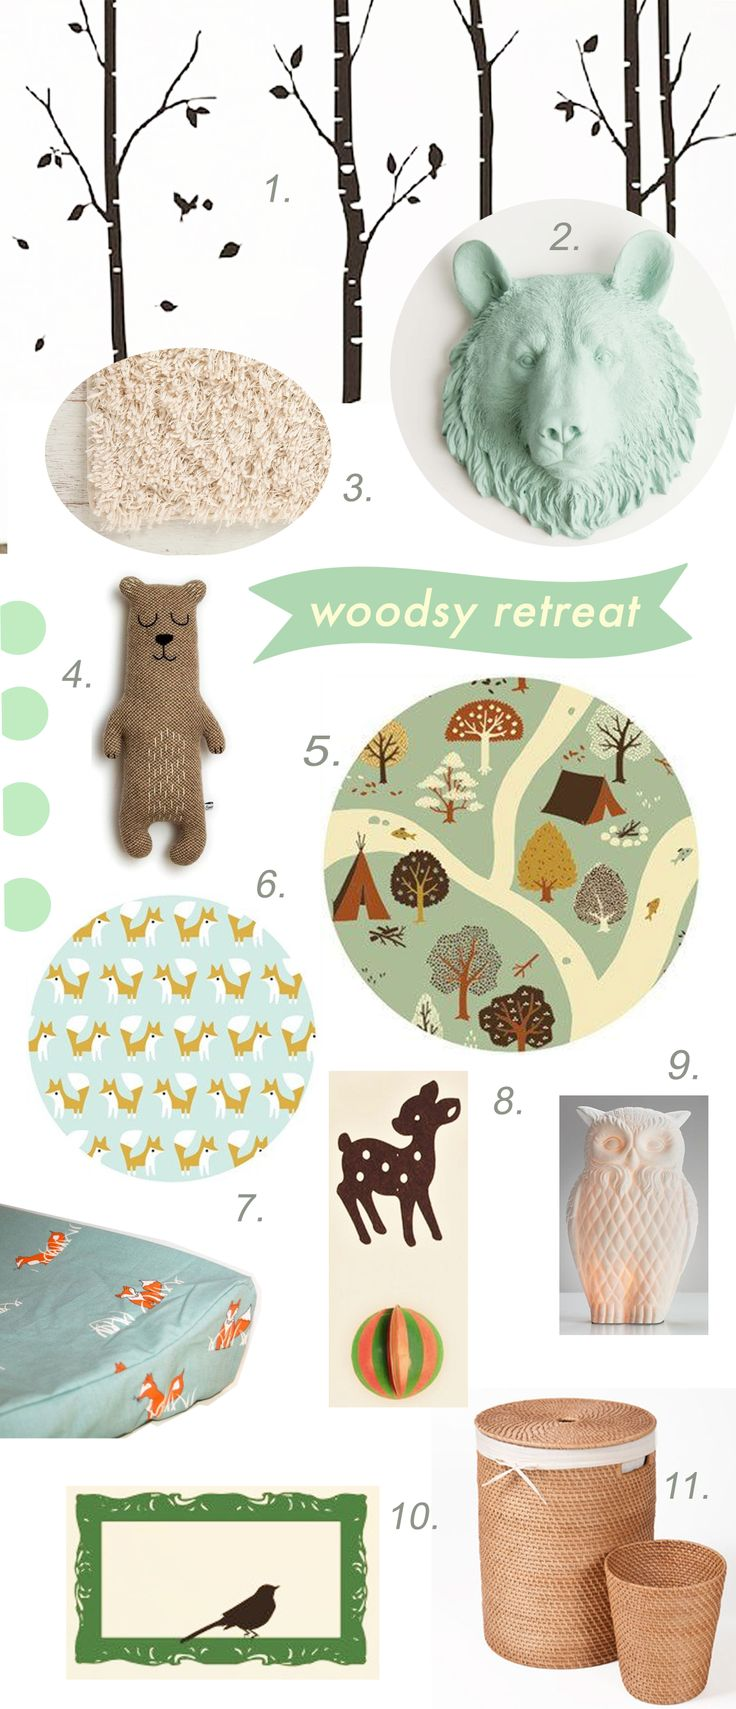 Woodsy Retreat Nursery Theme // by Chachi Loves Design, Los Angeles // for sources visit: http://chachilovesdesign.tumblr.com/